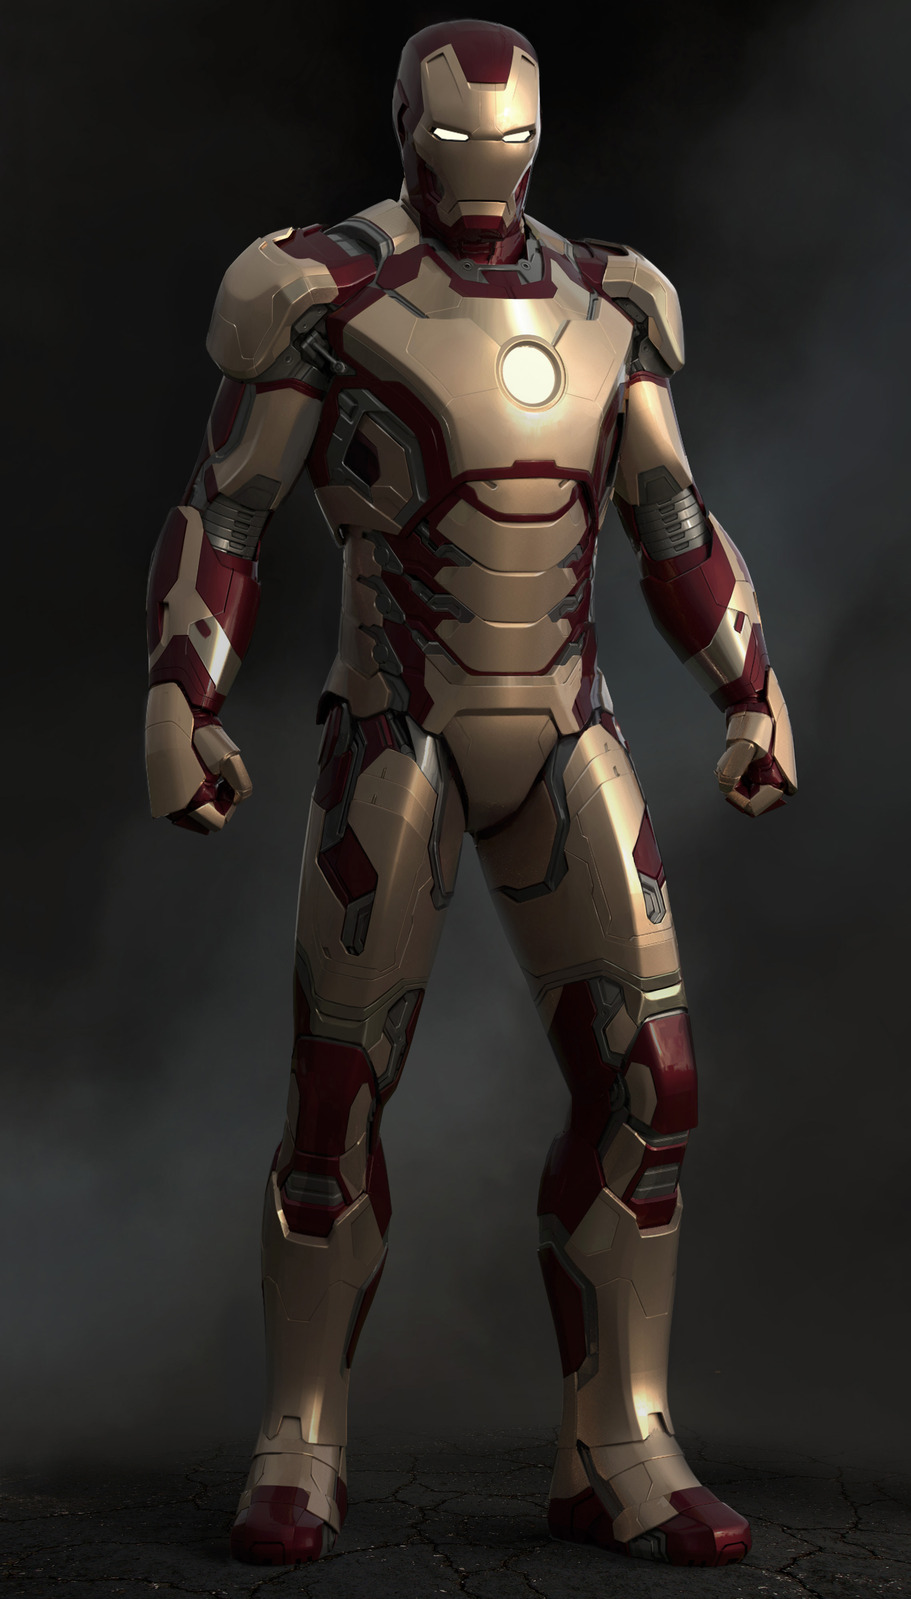 Iron Man 3 War Machine Concept Art Im Still Seeing New